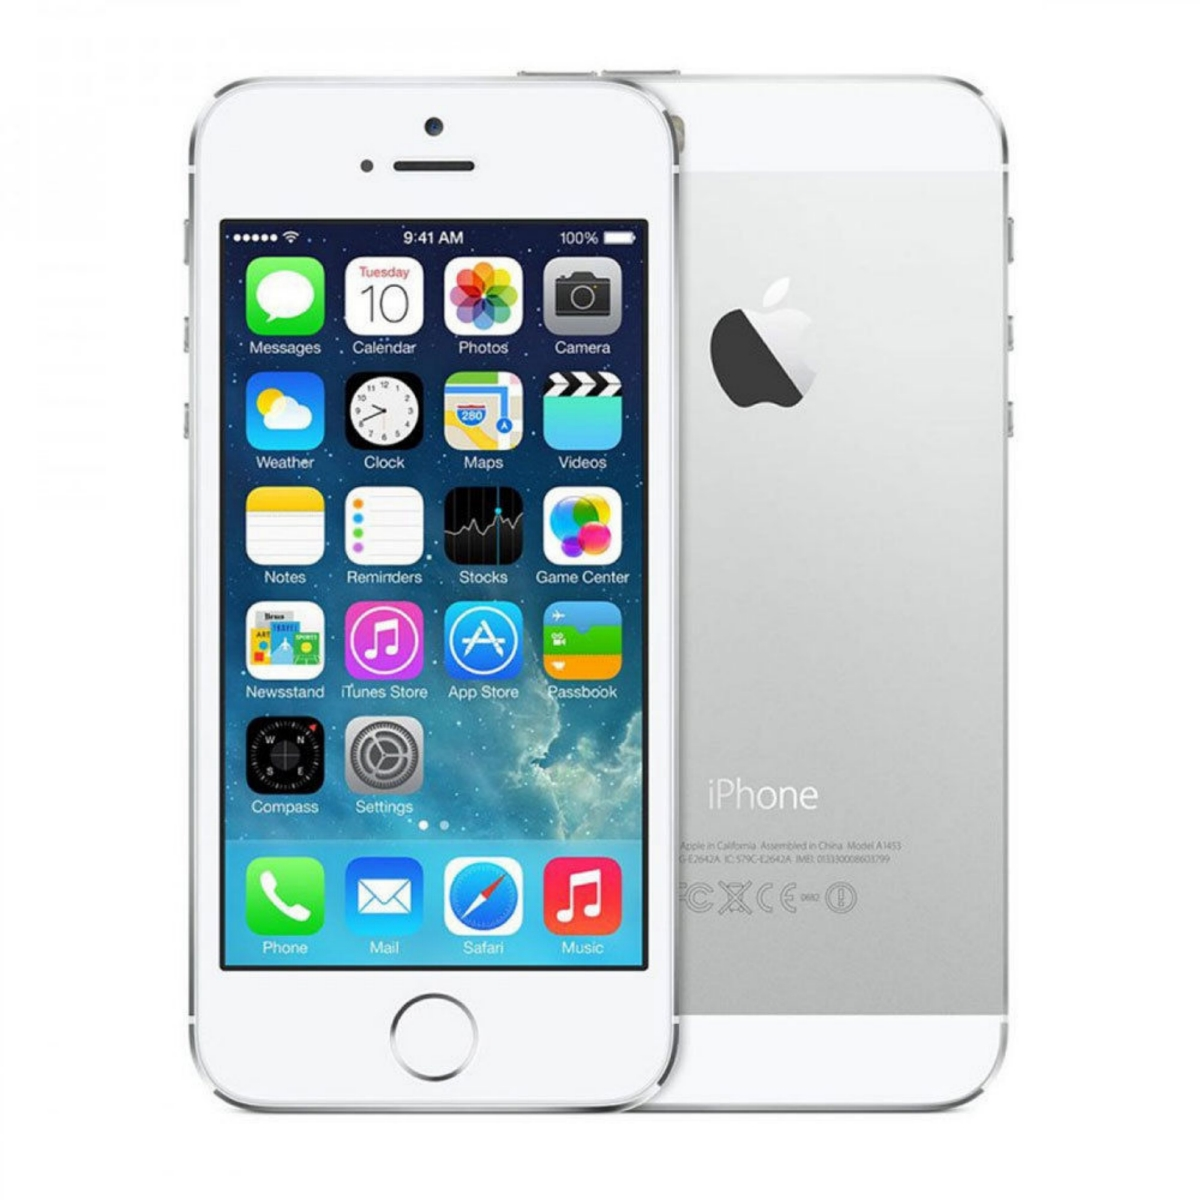 Apple iPhone 5s (Sprint), 16GB, Silver, A1453